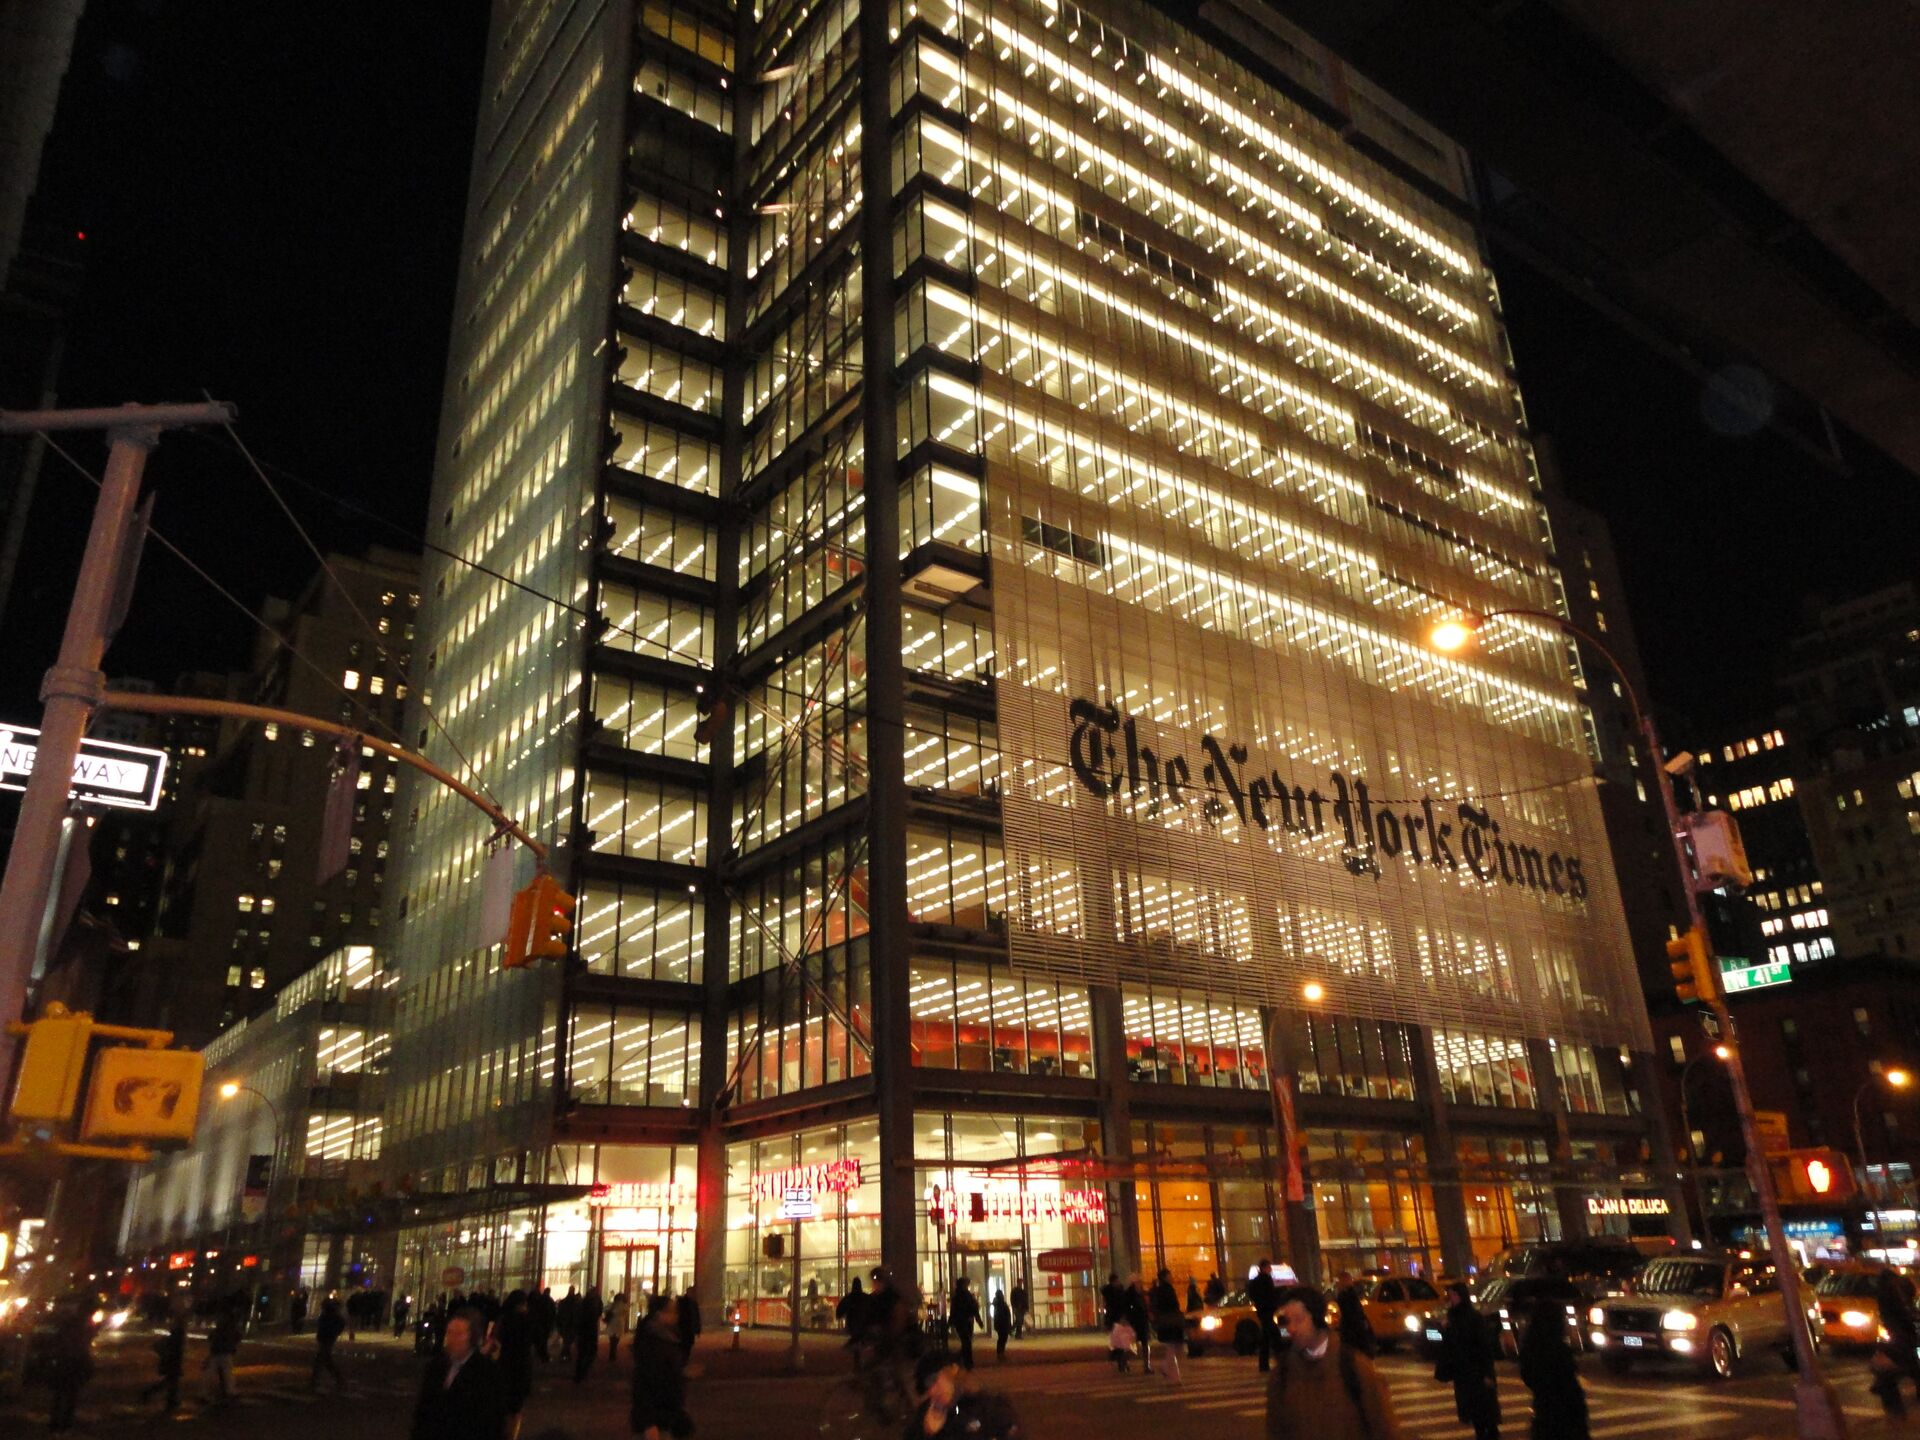 Biden's Justice Department Issued Gag Order on New York Times Execs Over Email Logs, Report Says - Sputnik International, 1920, 05.06.2021